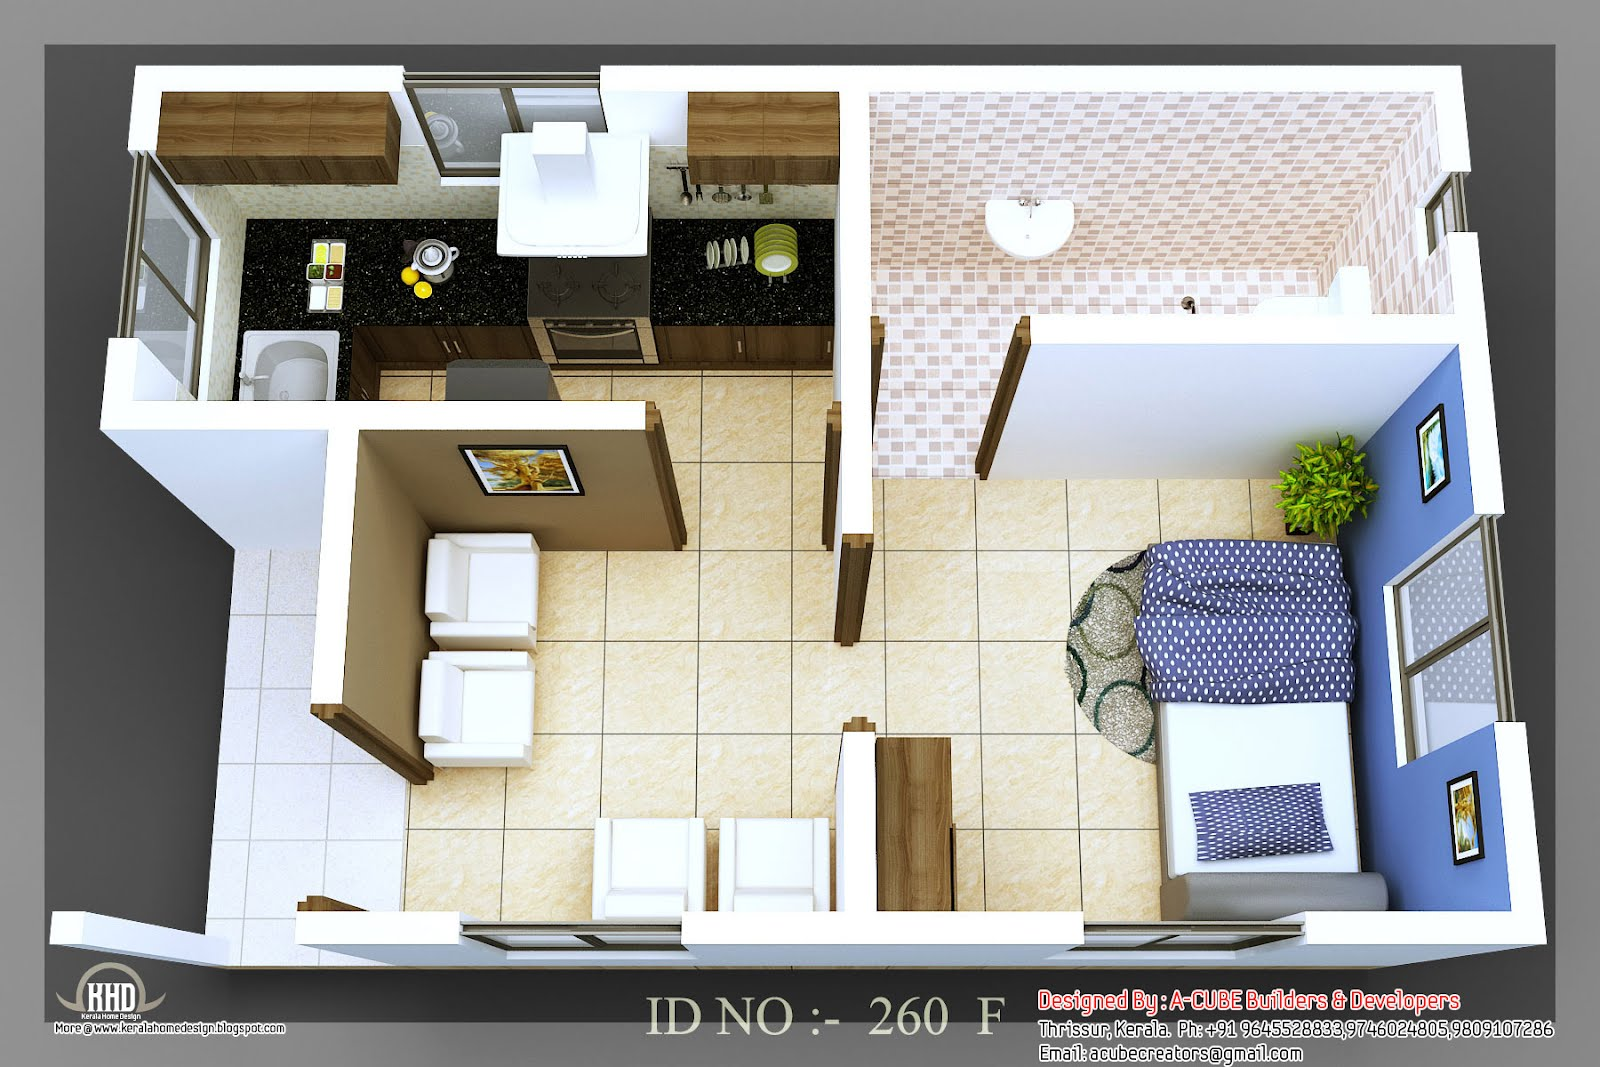 3d isometric views of small house plans indian home decor for 3d home